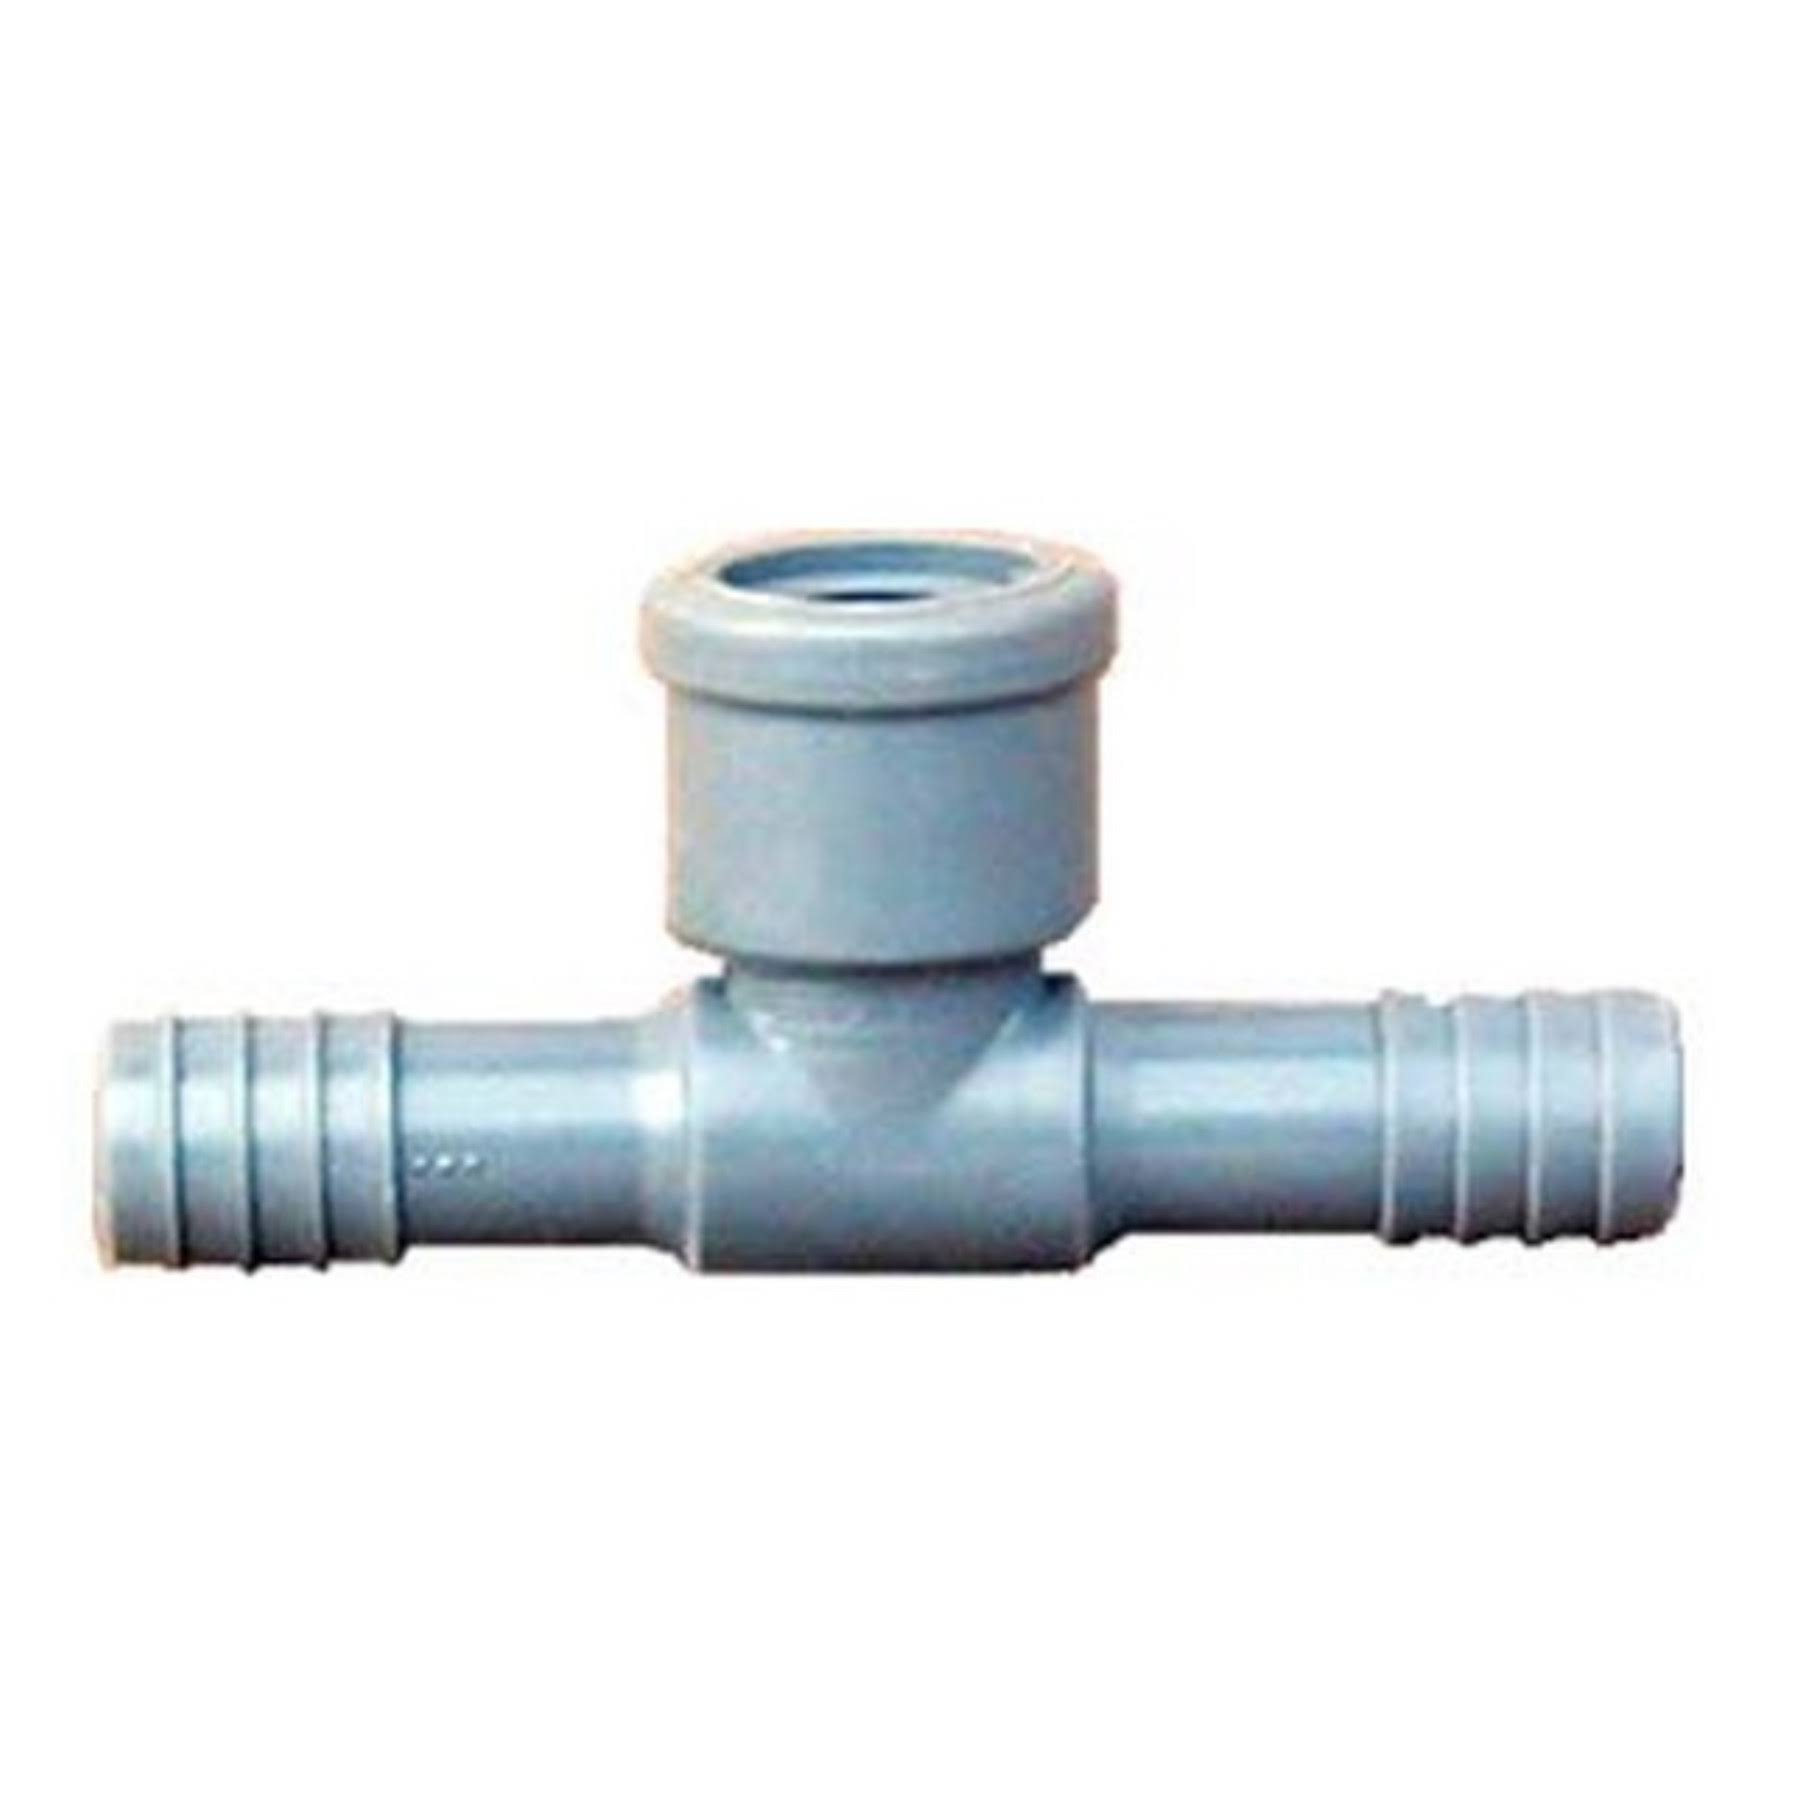 "Genova Tee Plastic Coil Fittings - 1/2"" Dia"